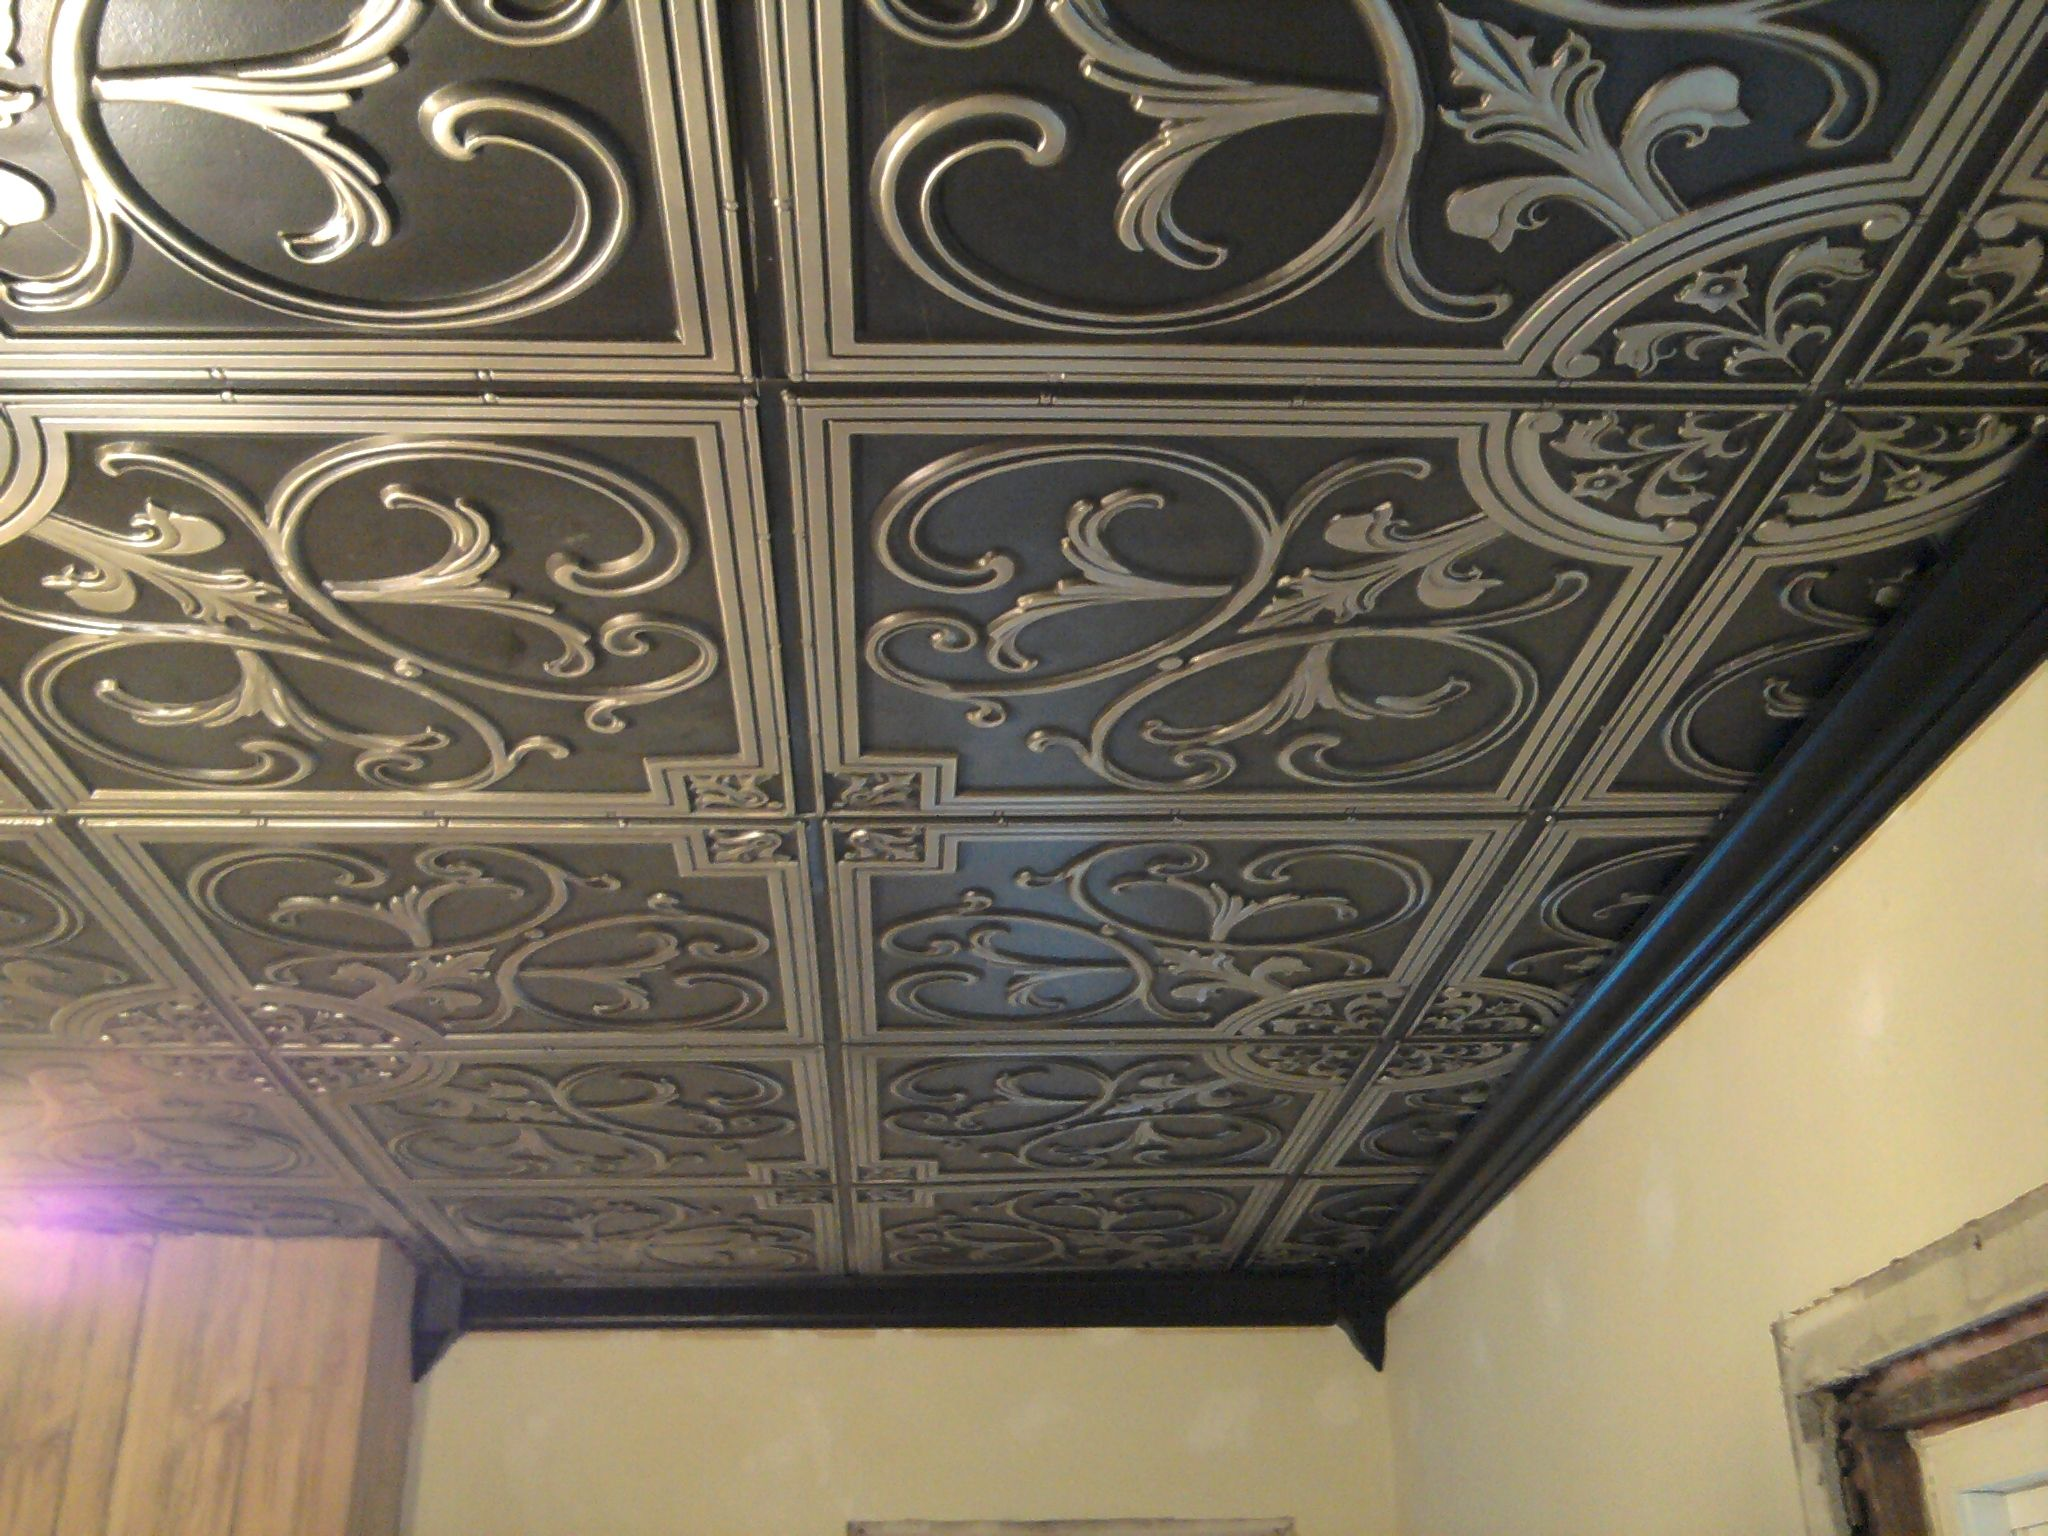 Glue on styrofoam ceiling tiles httpcreativechairsandtables glue on styrofoam ceiling tiles dailygadgetfo Images